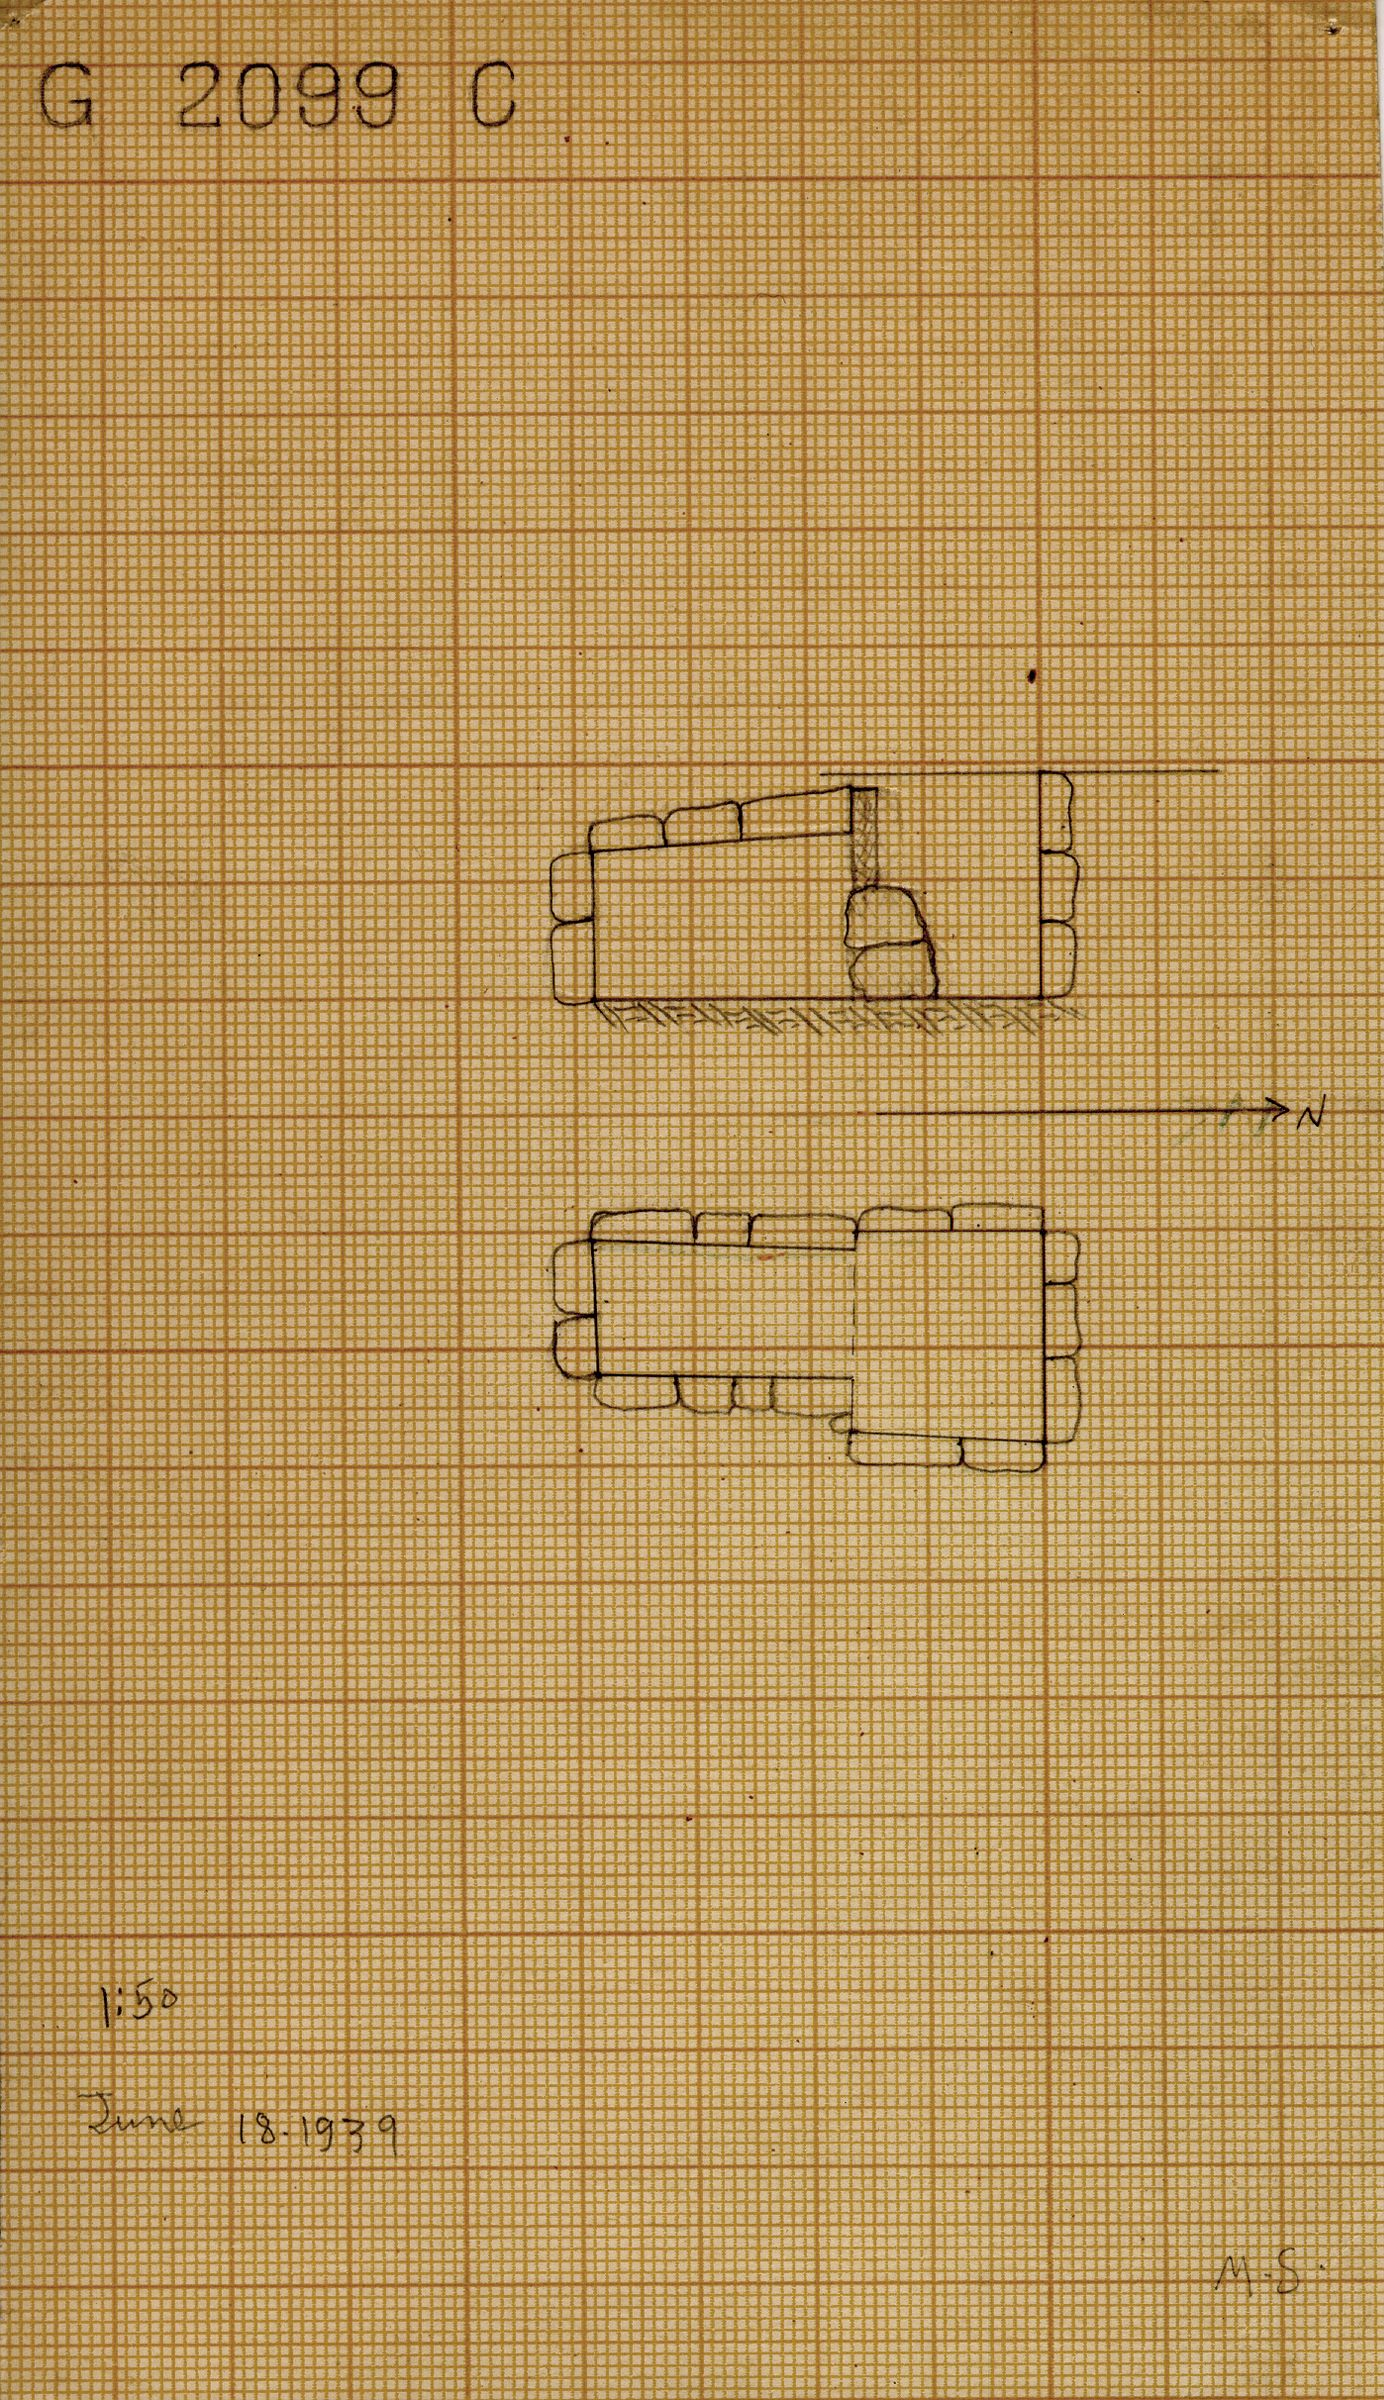 Maps and plans: G 2099, Shaft C